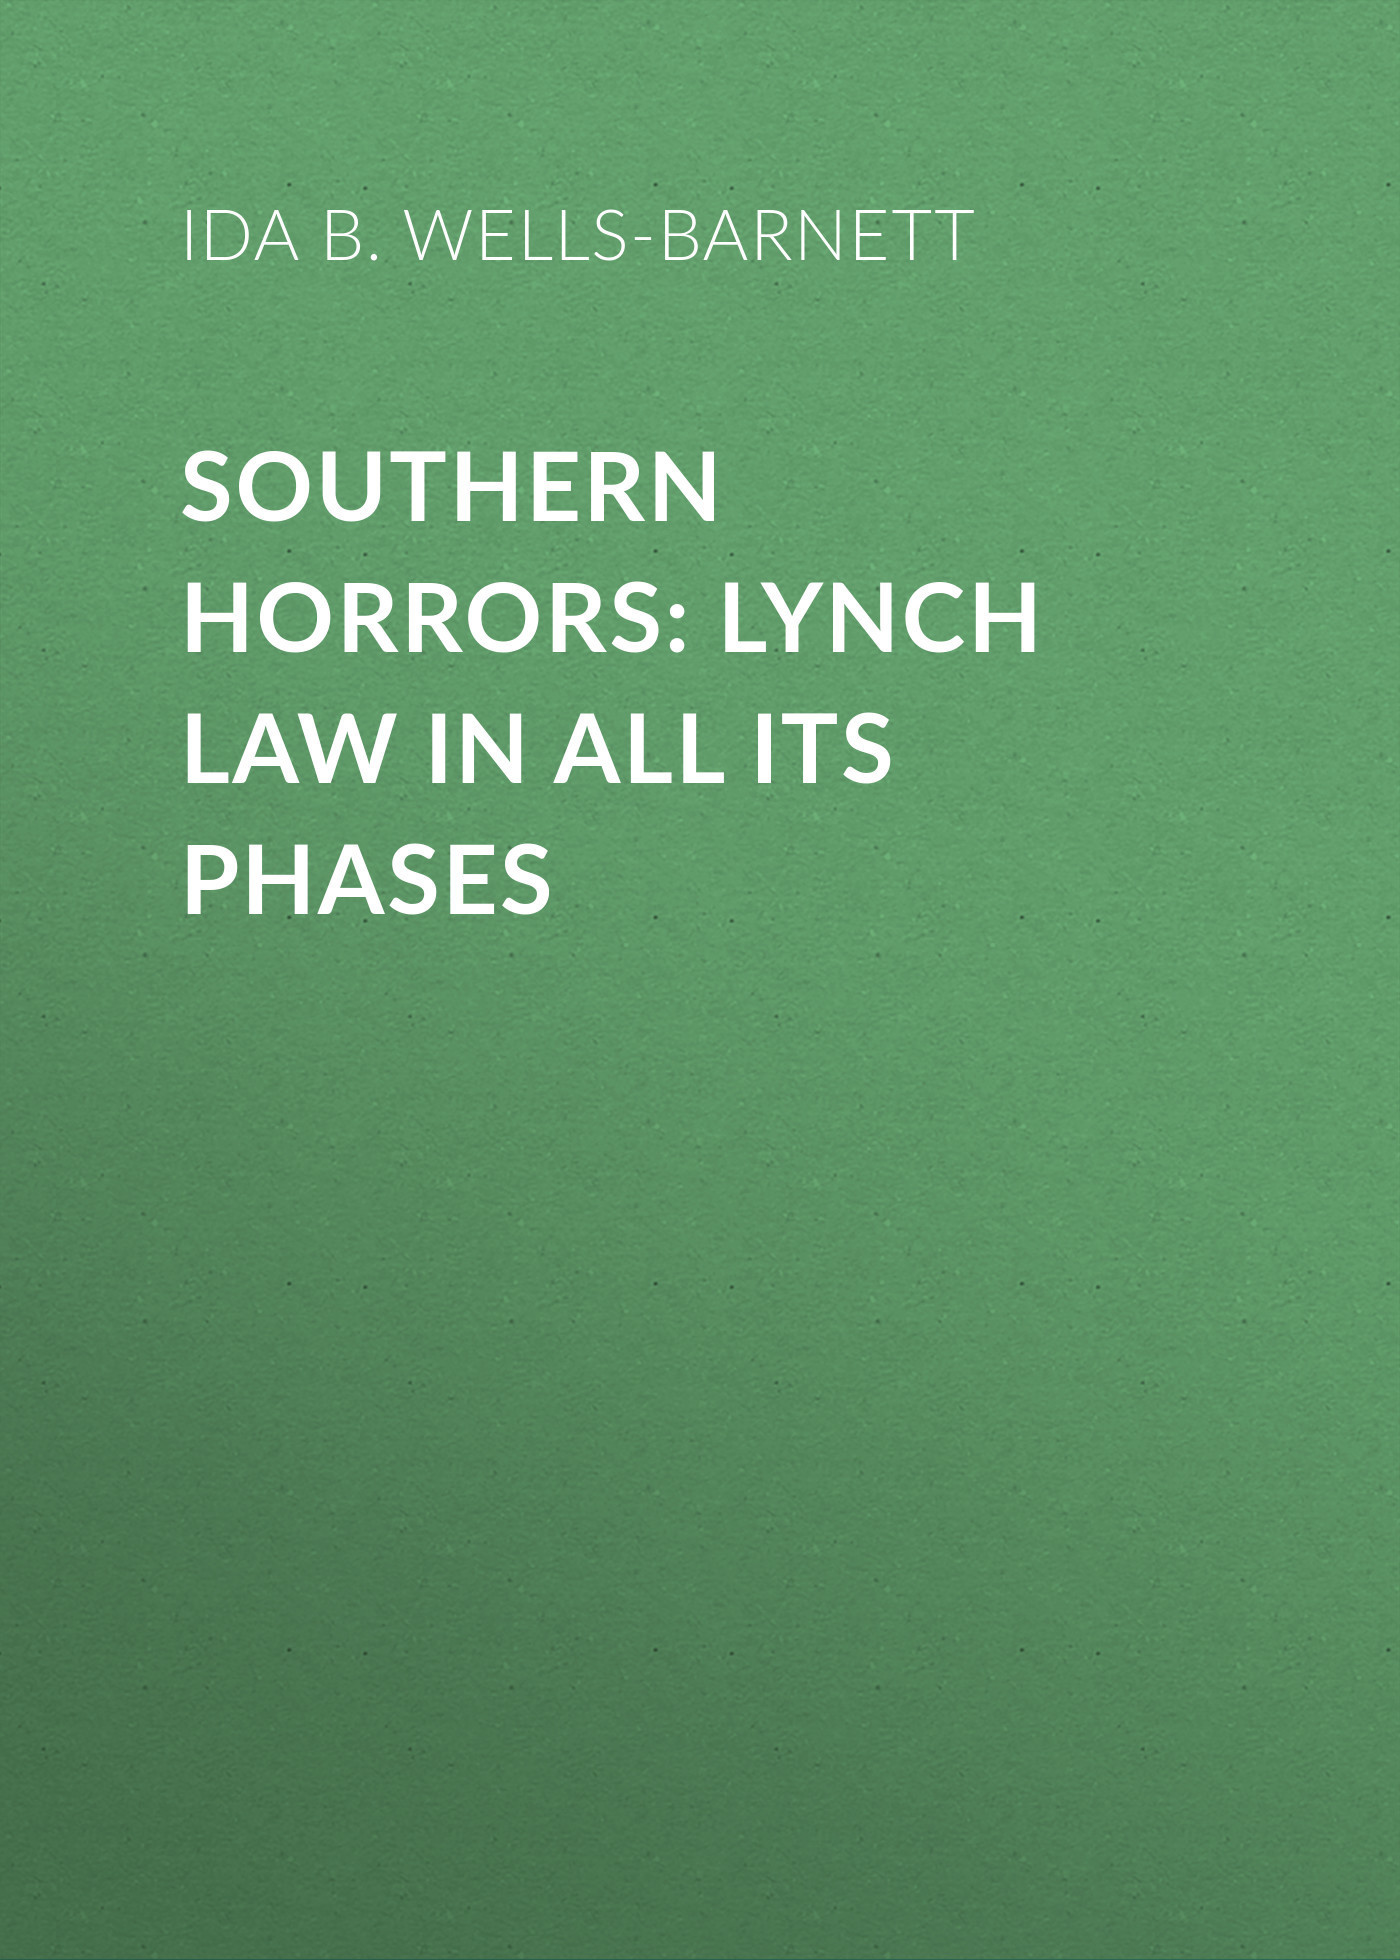 Ida B. Wells-Barnett Southern Horrors: Lynch Law in All Its Phases unlocked dx7 printhead f1890000 print head for epson 3885 3880 3850 3890 eco solvent machine uv flat printers with dx7 head